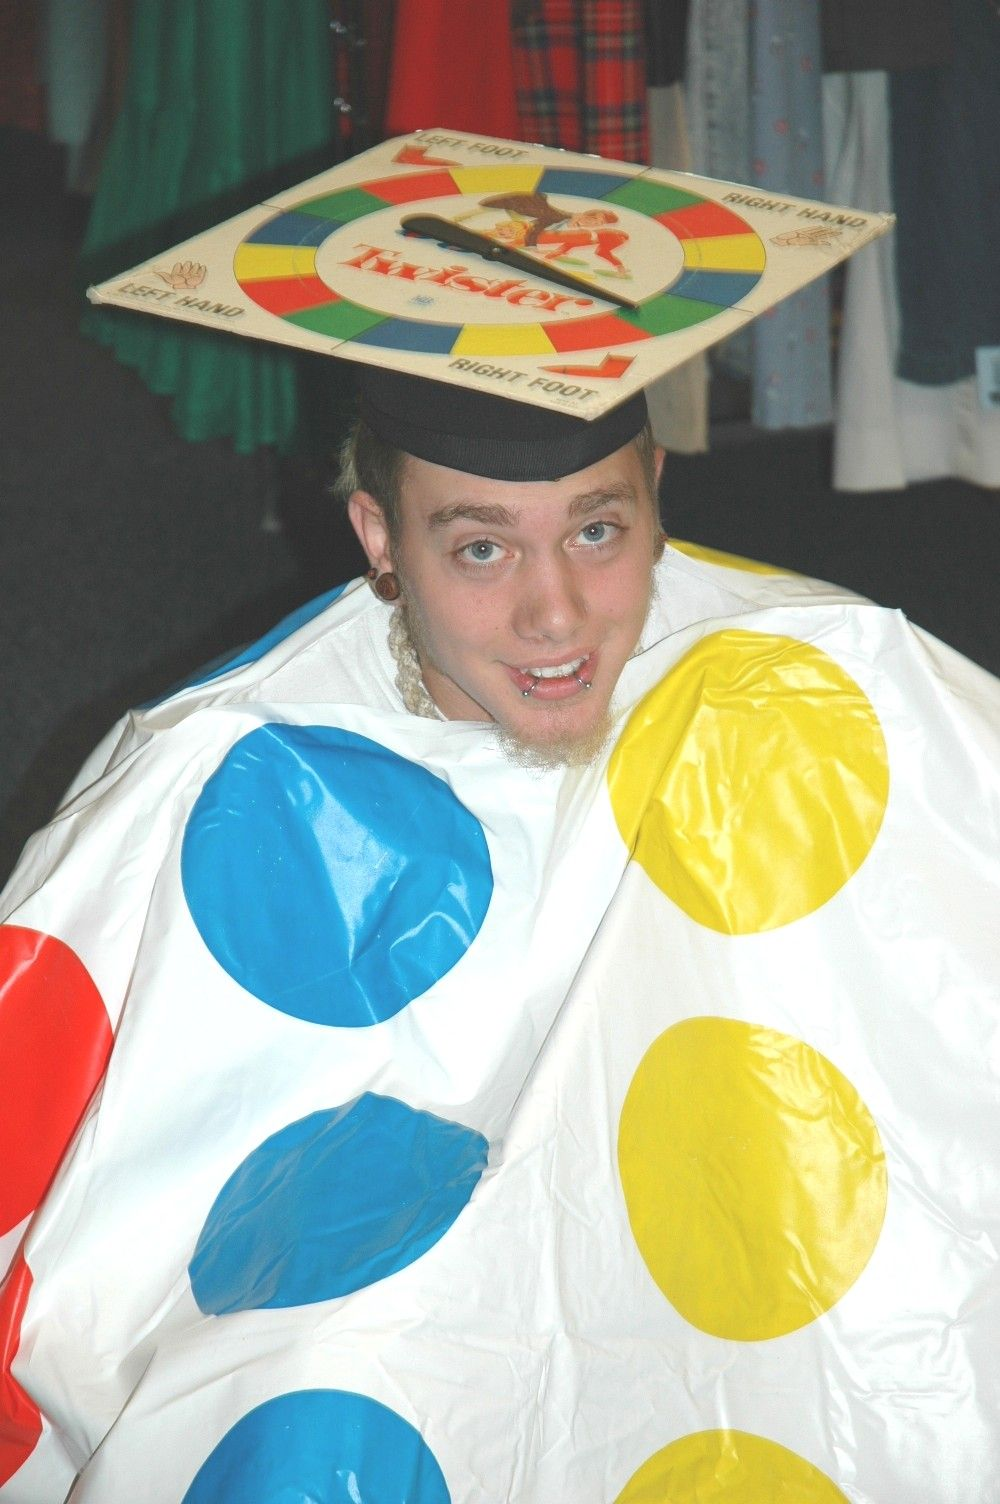 twister halloween costume - Halloween Fashion Games